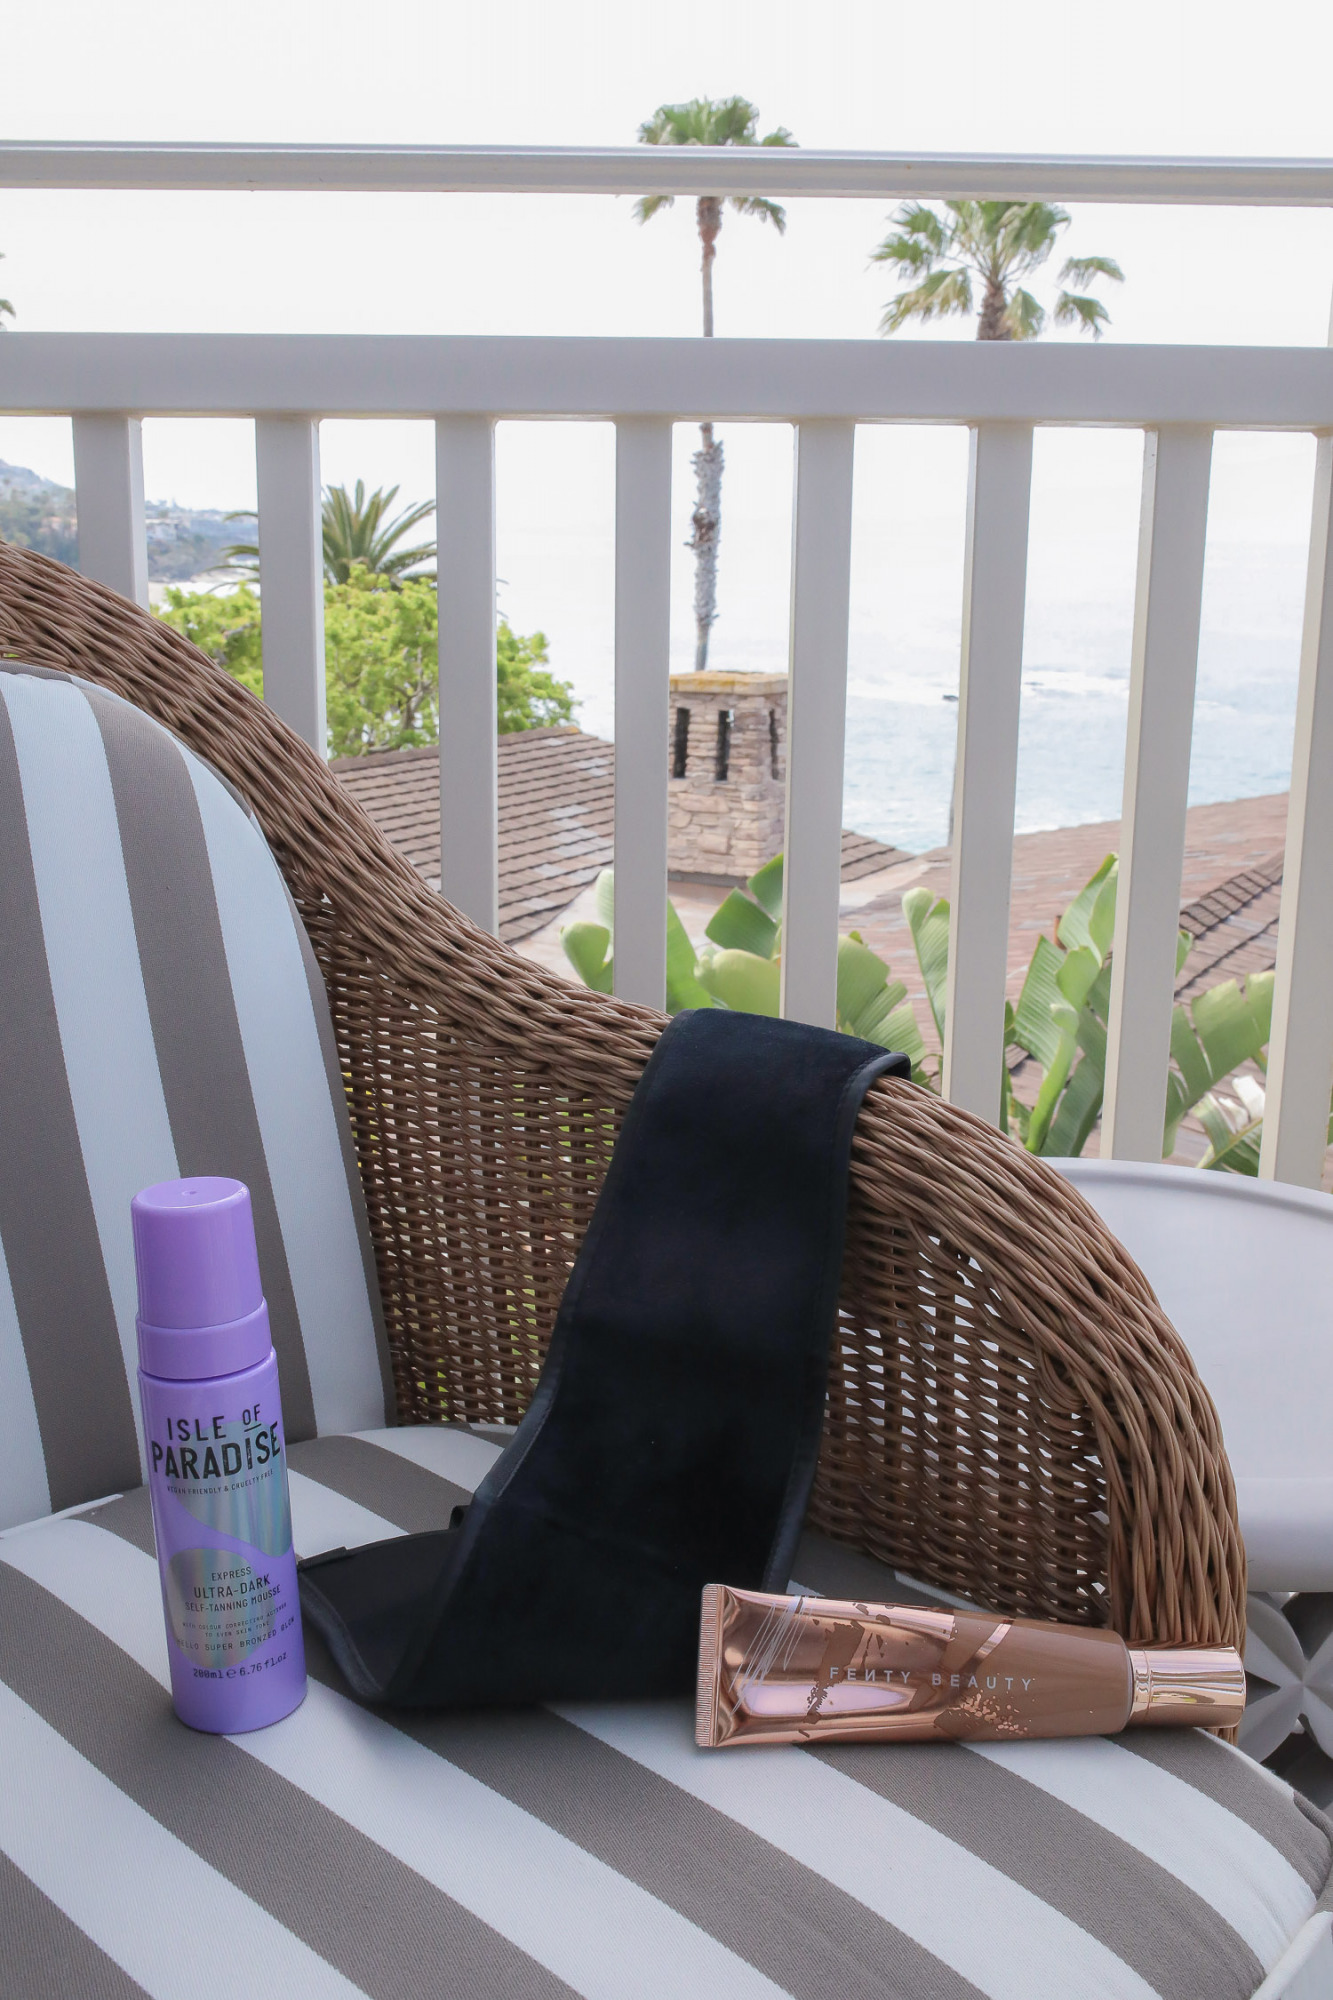 Best self tanner 2021, Isle of Paradise ultra Dark Self Tanner, Fenty self tanner makeup | Travel Hacks by popular life and style blog, The Sweetest Thing: image of Fenty Beauty self tanner, Isle of Paradise self tanner, and a self tanner towel.